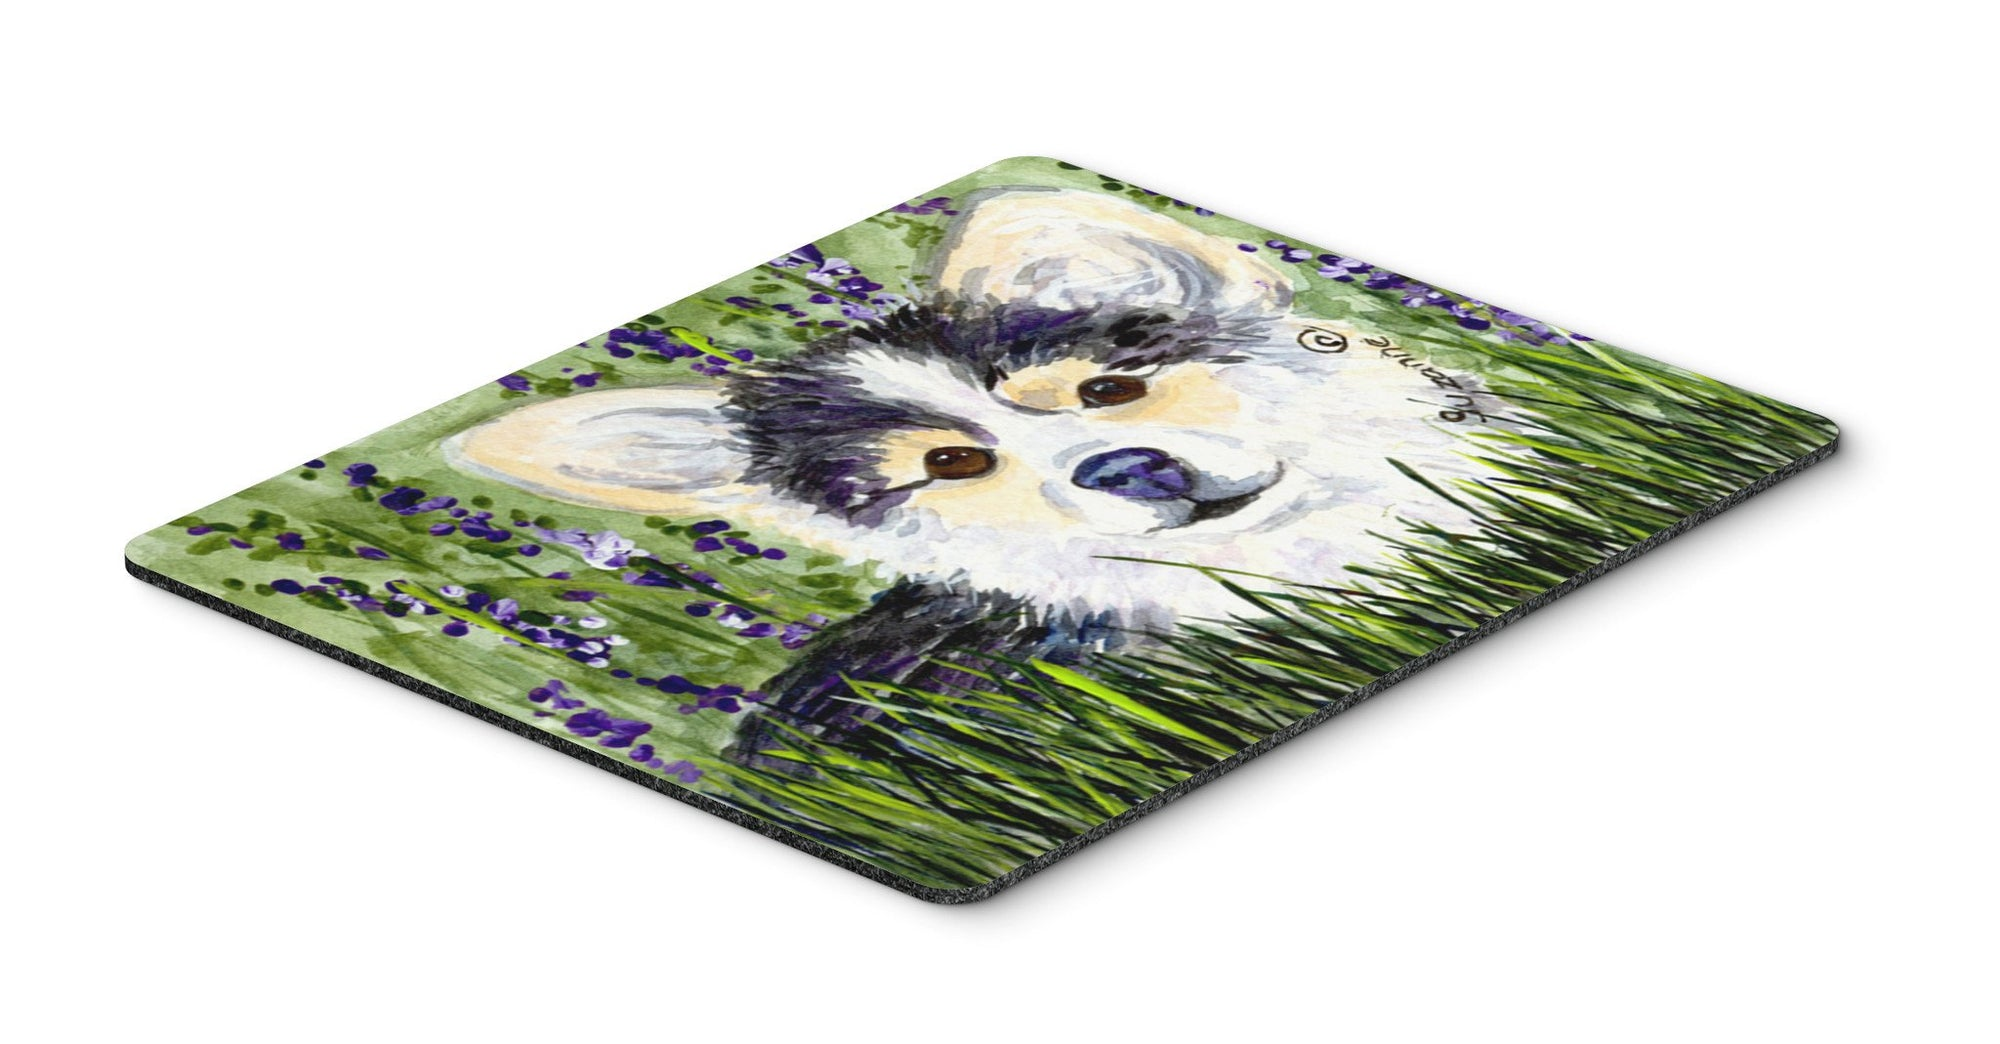 Chihuahua Mouse pad, hot pad, or trivet by Caroline's Treasures